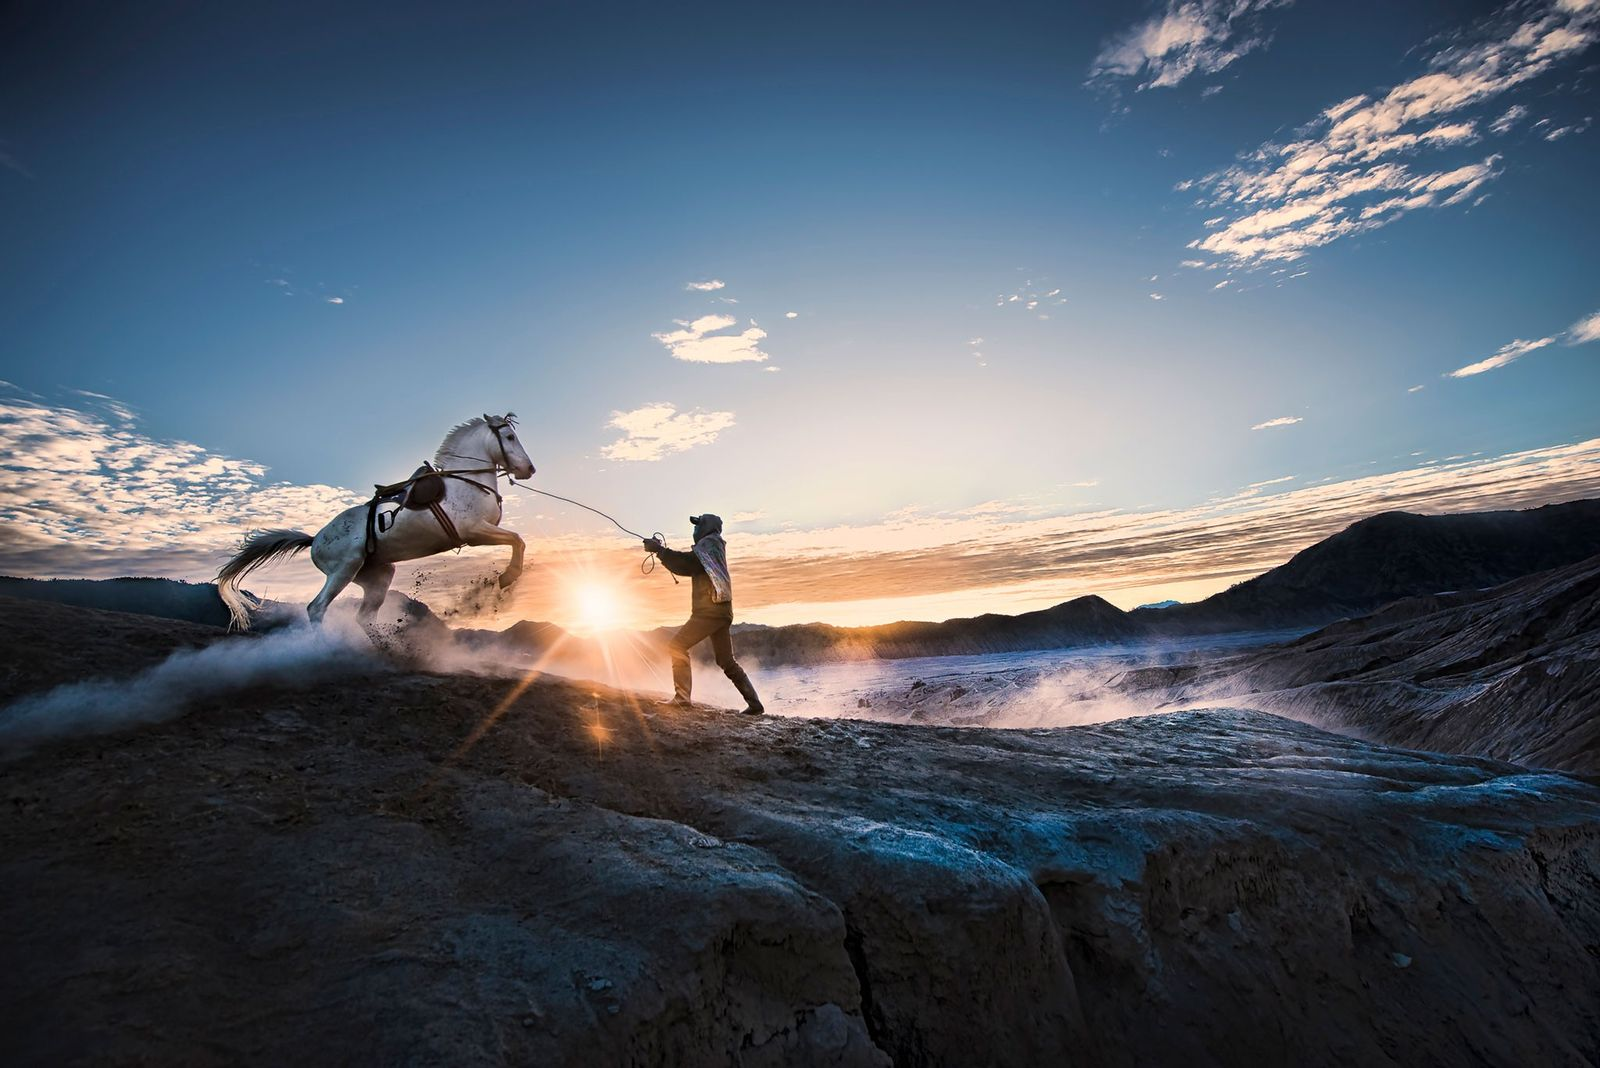 22 Incredible Photos of Pure Adventure